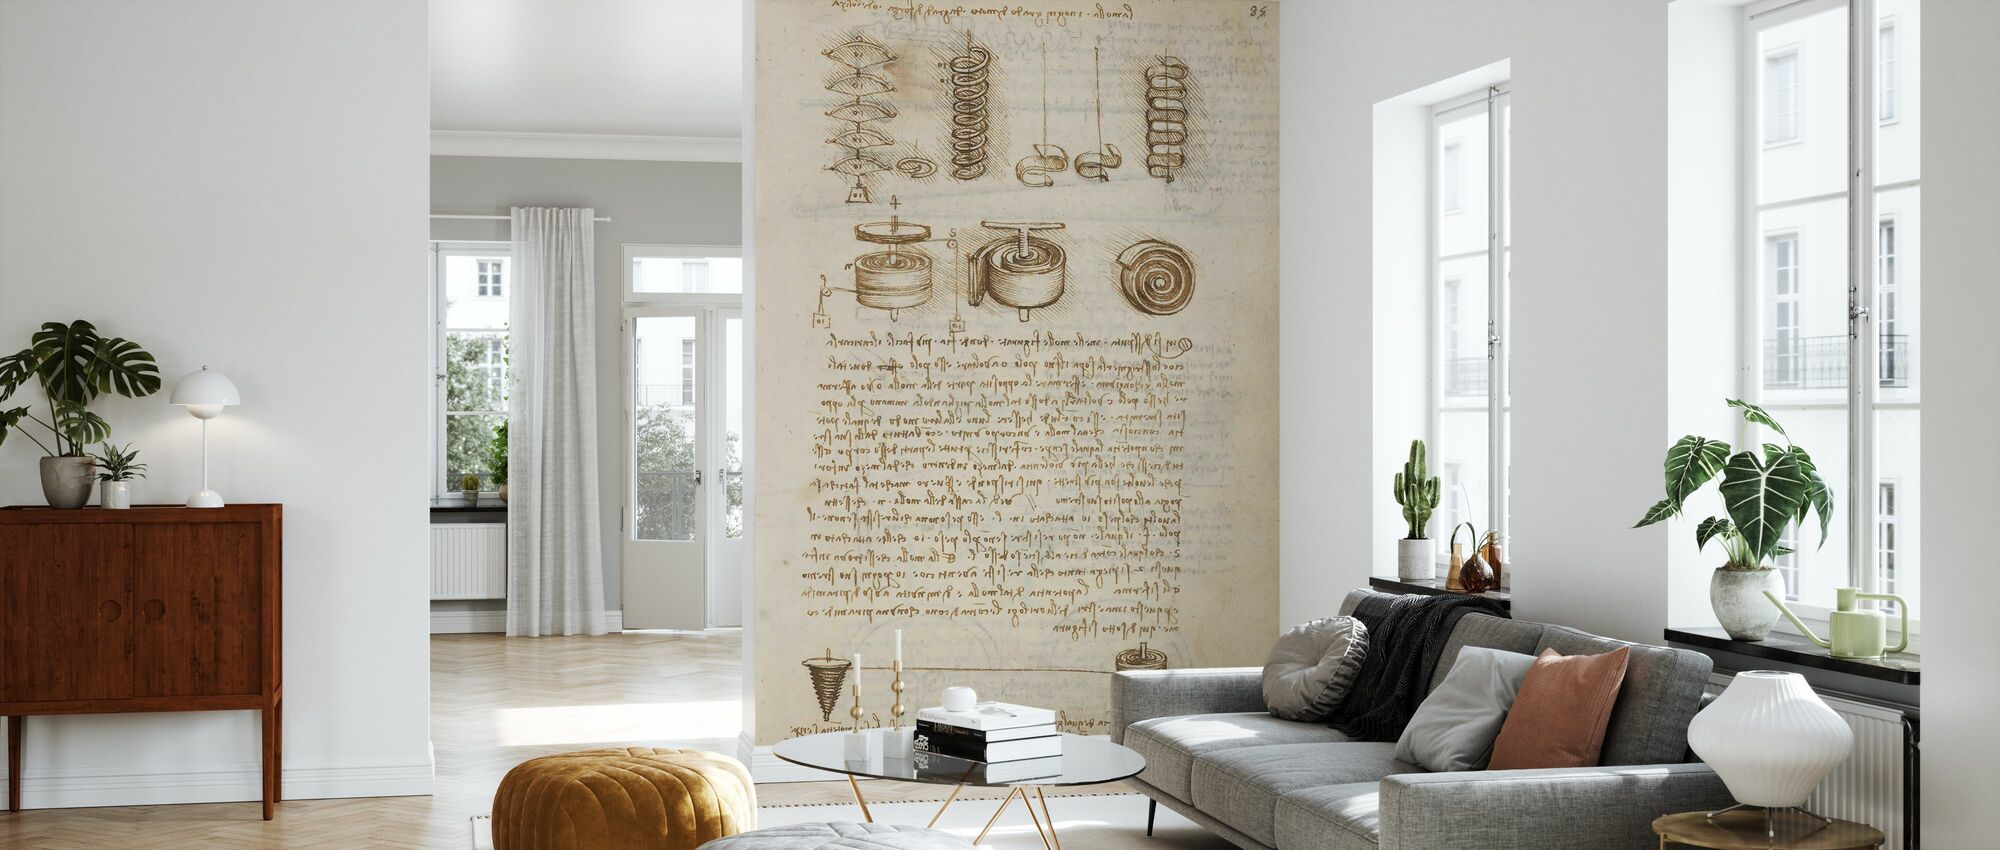 Codex Madrid IV - Leonardo da Vinci - Wallpaper - Living Room